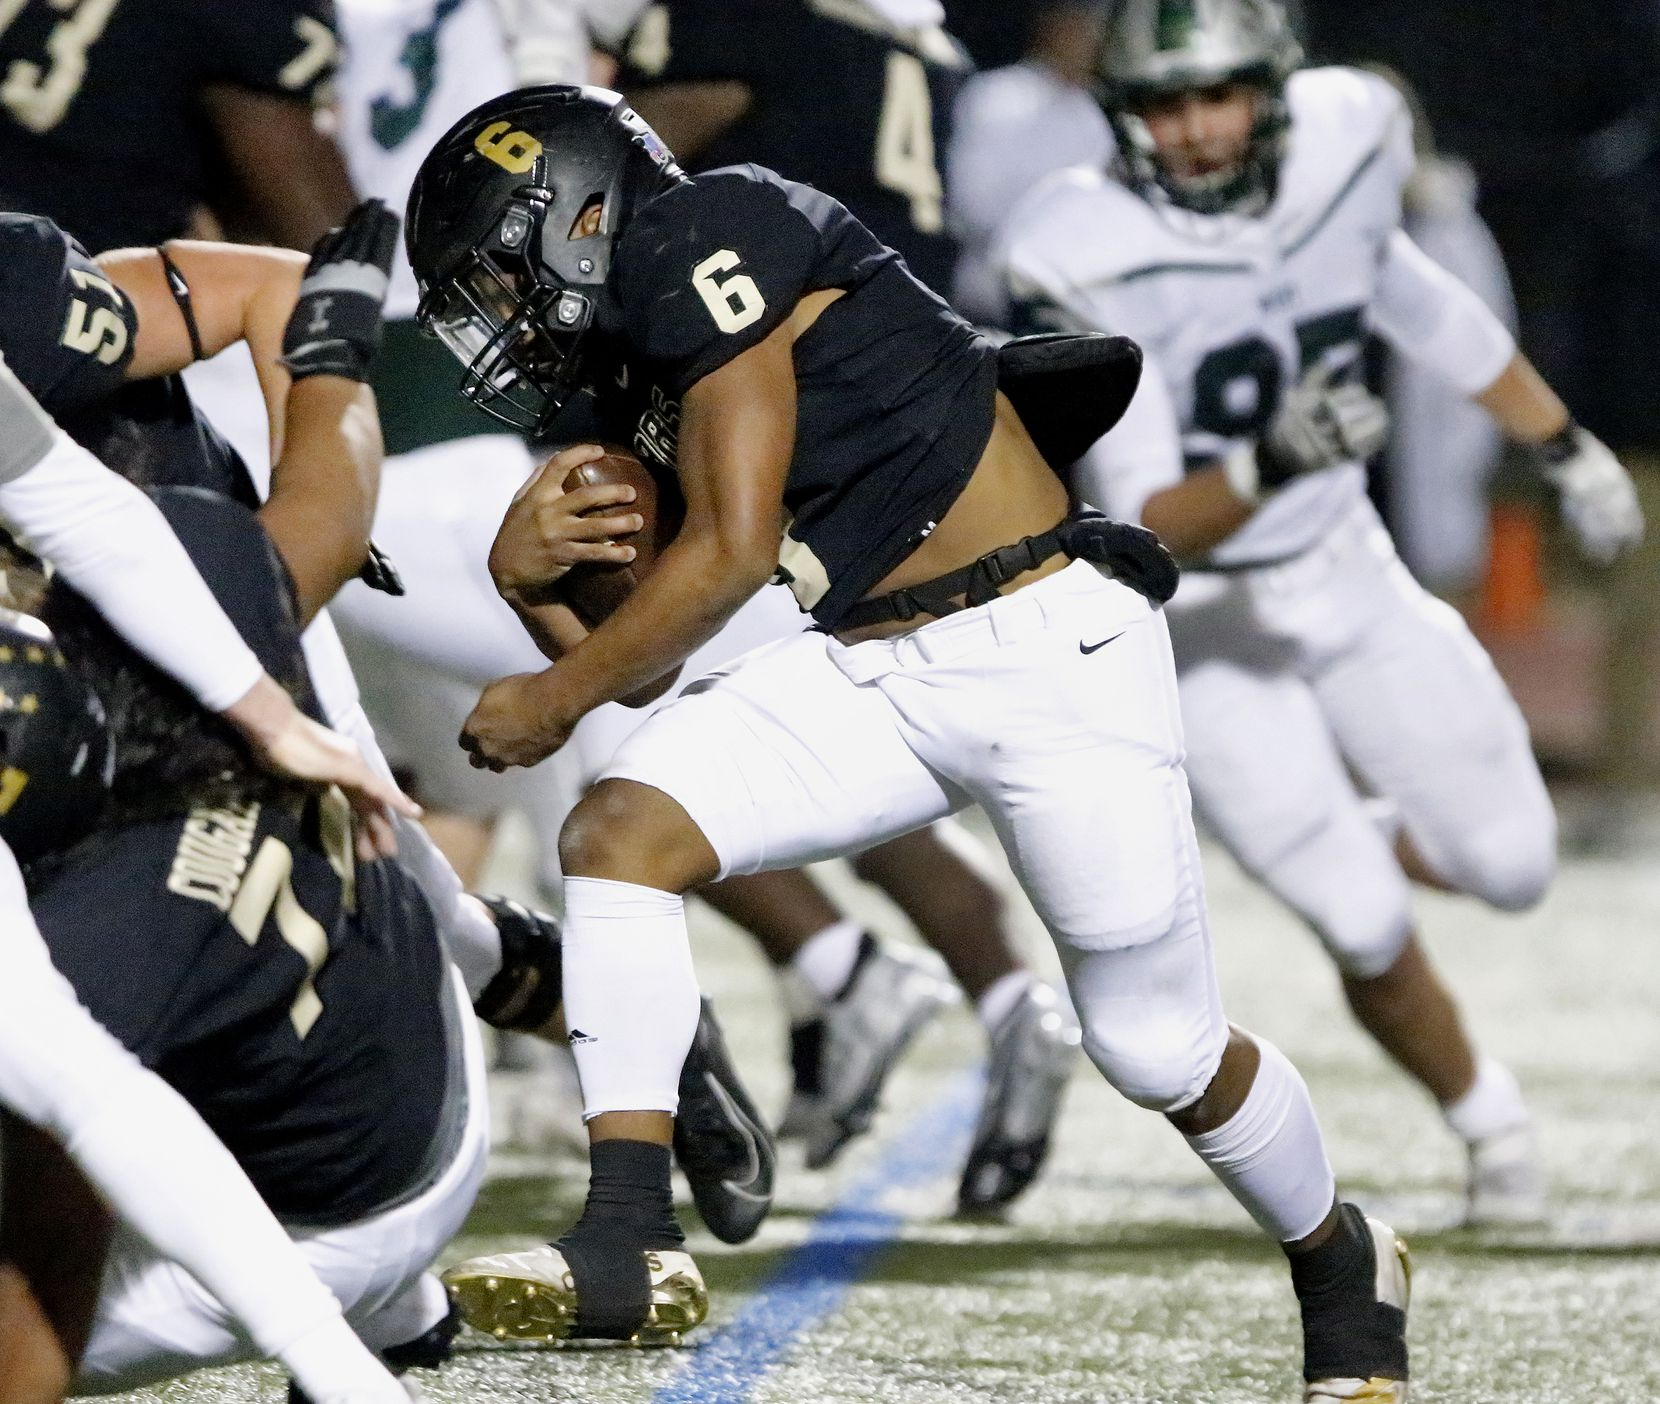 The Colony High School running back Kamden Wesley (6) carries the ball during the first half as The Colony High School hosted Frisco Reedy High School at Tommy Briggs Stadium on Friday night, December 4, 2020.  (Stewart F. House/Special Contributor)